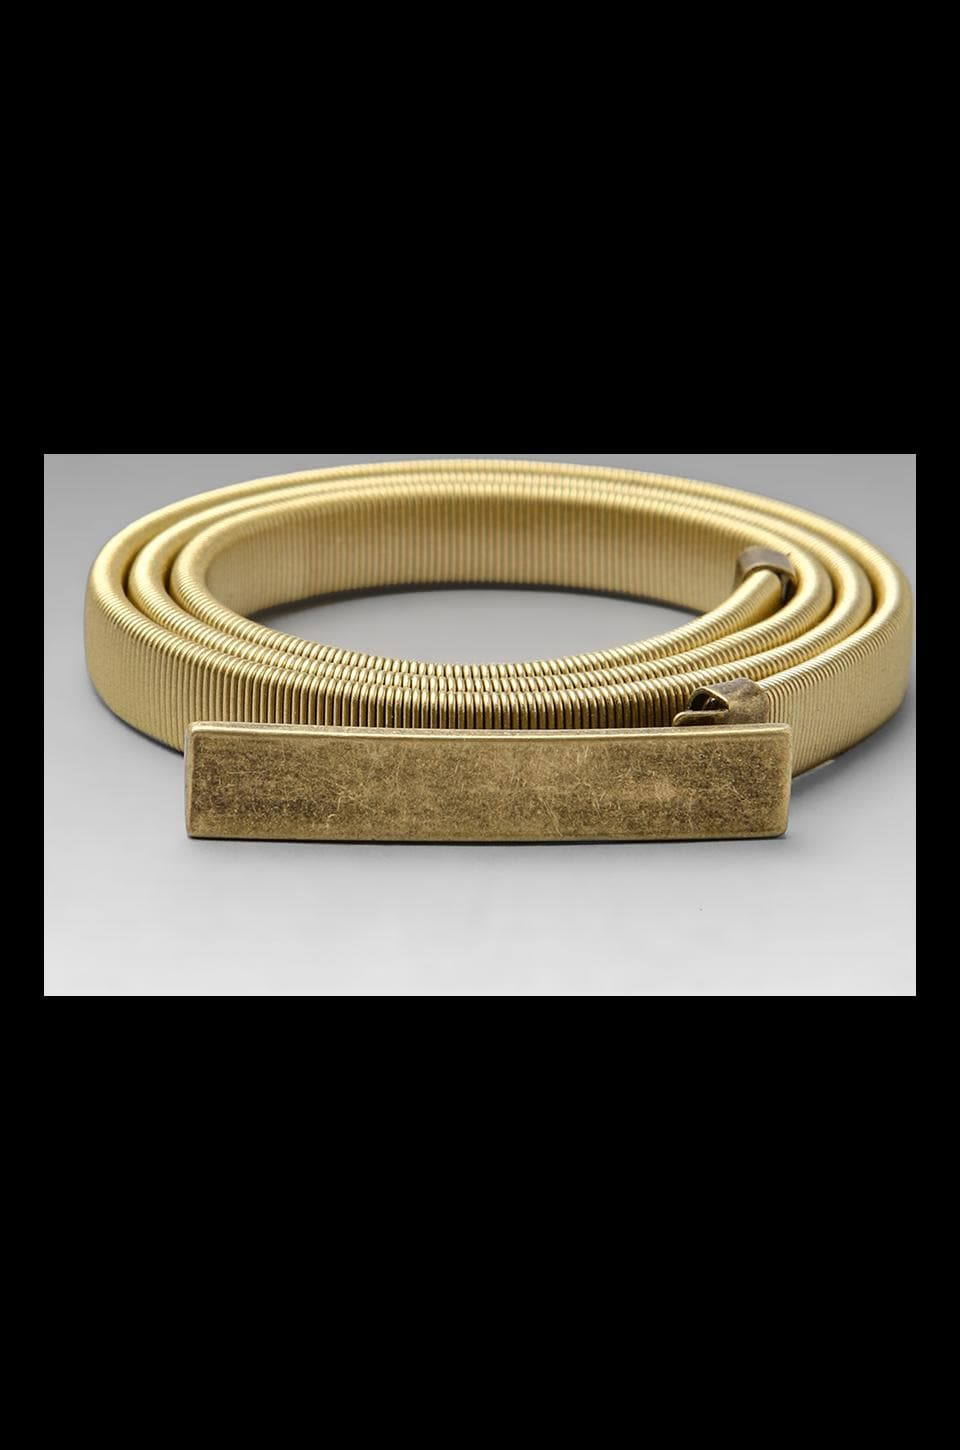 Rachel Pally Metal Belt in Brass